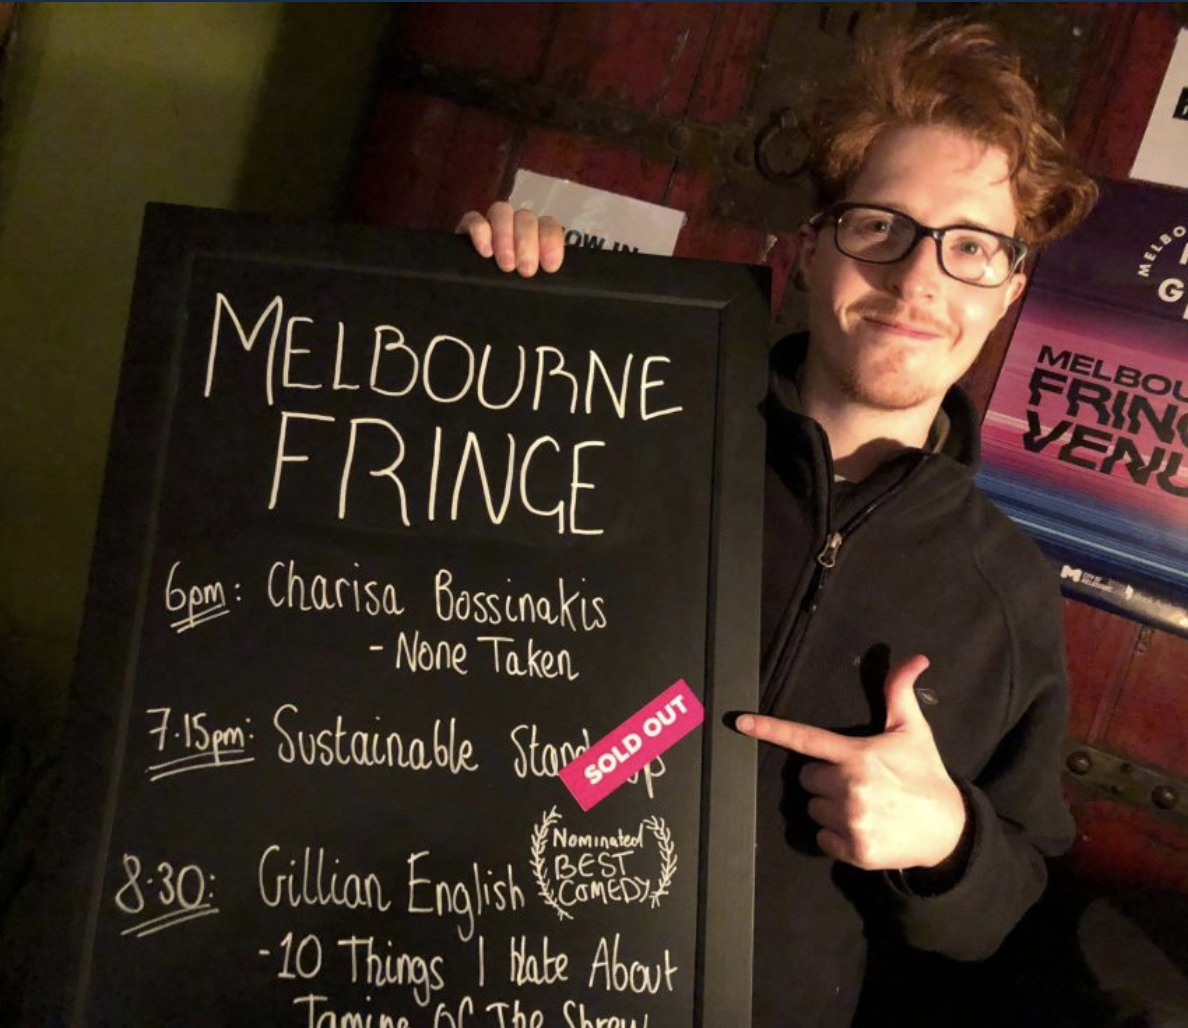 Maxwell Smith pointing at a blackboard advertising his show